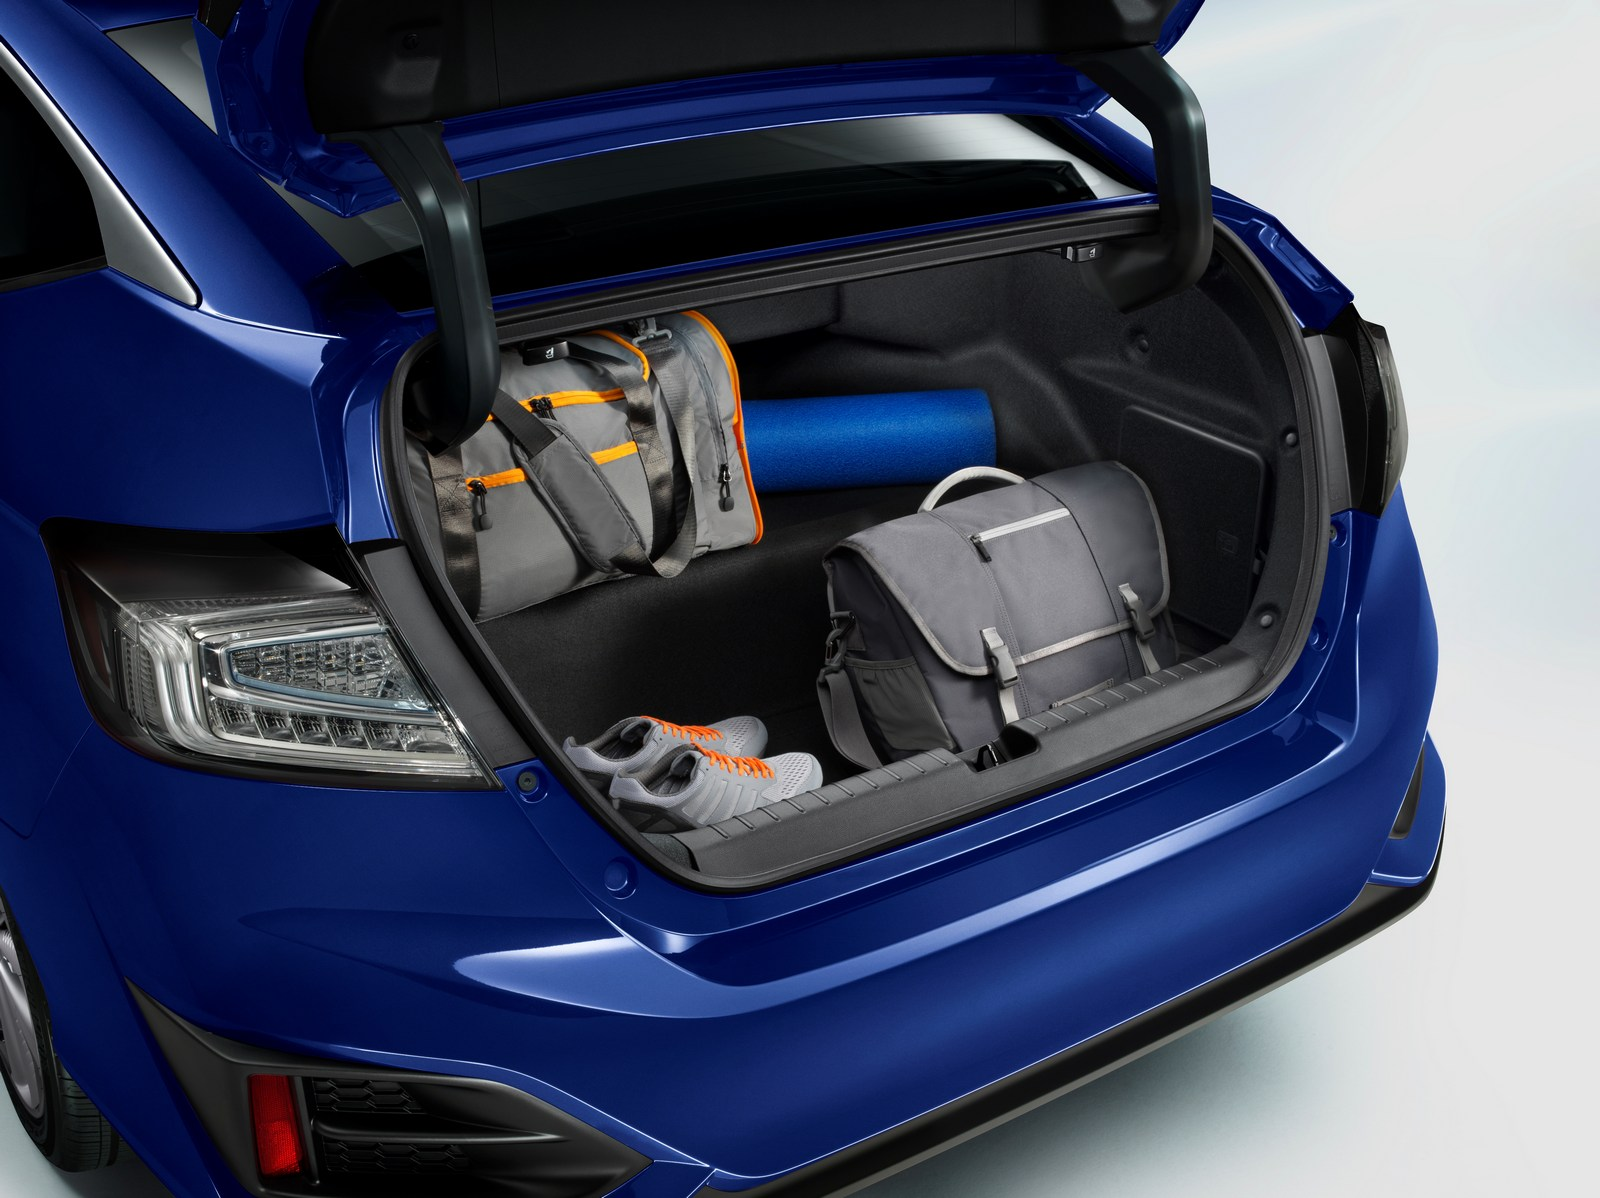 How To Charge A Car Battery Without A Charger >> 2017 Honda Clarity Electric Launched In The US, Costs $269 ...